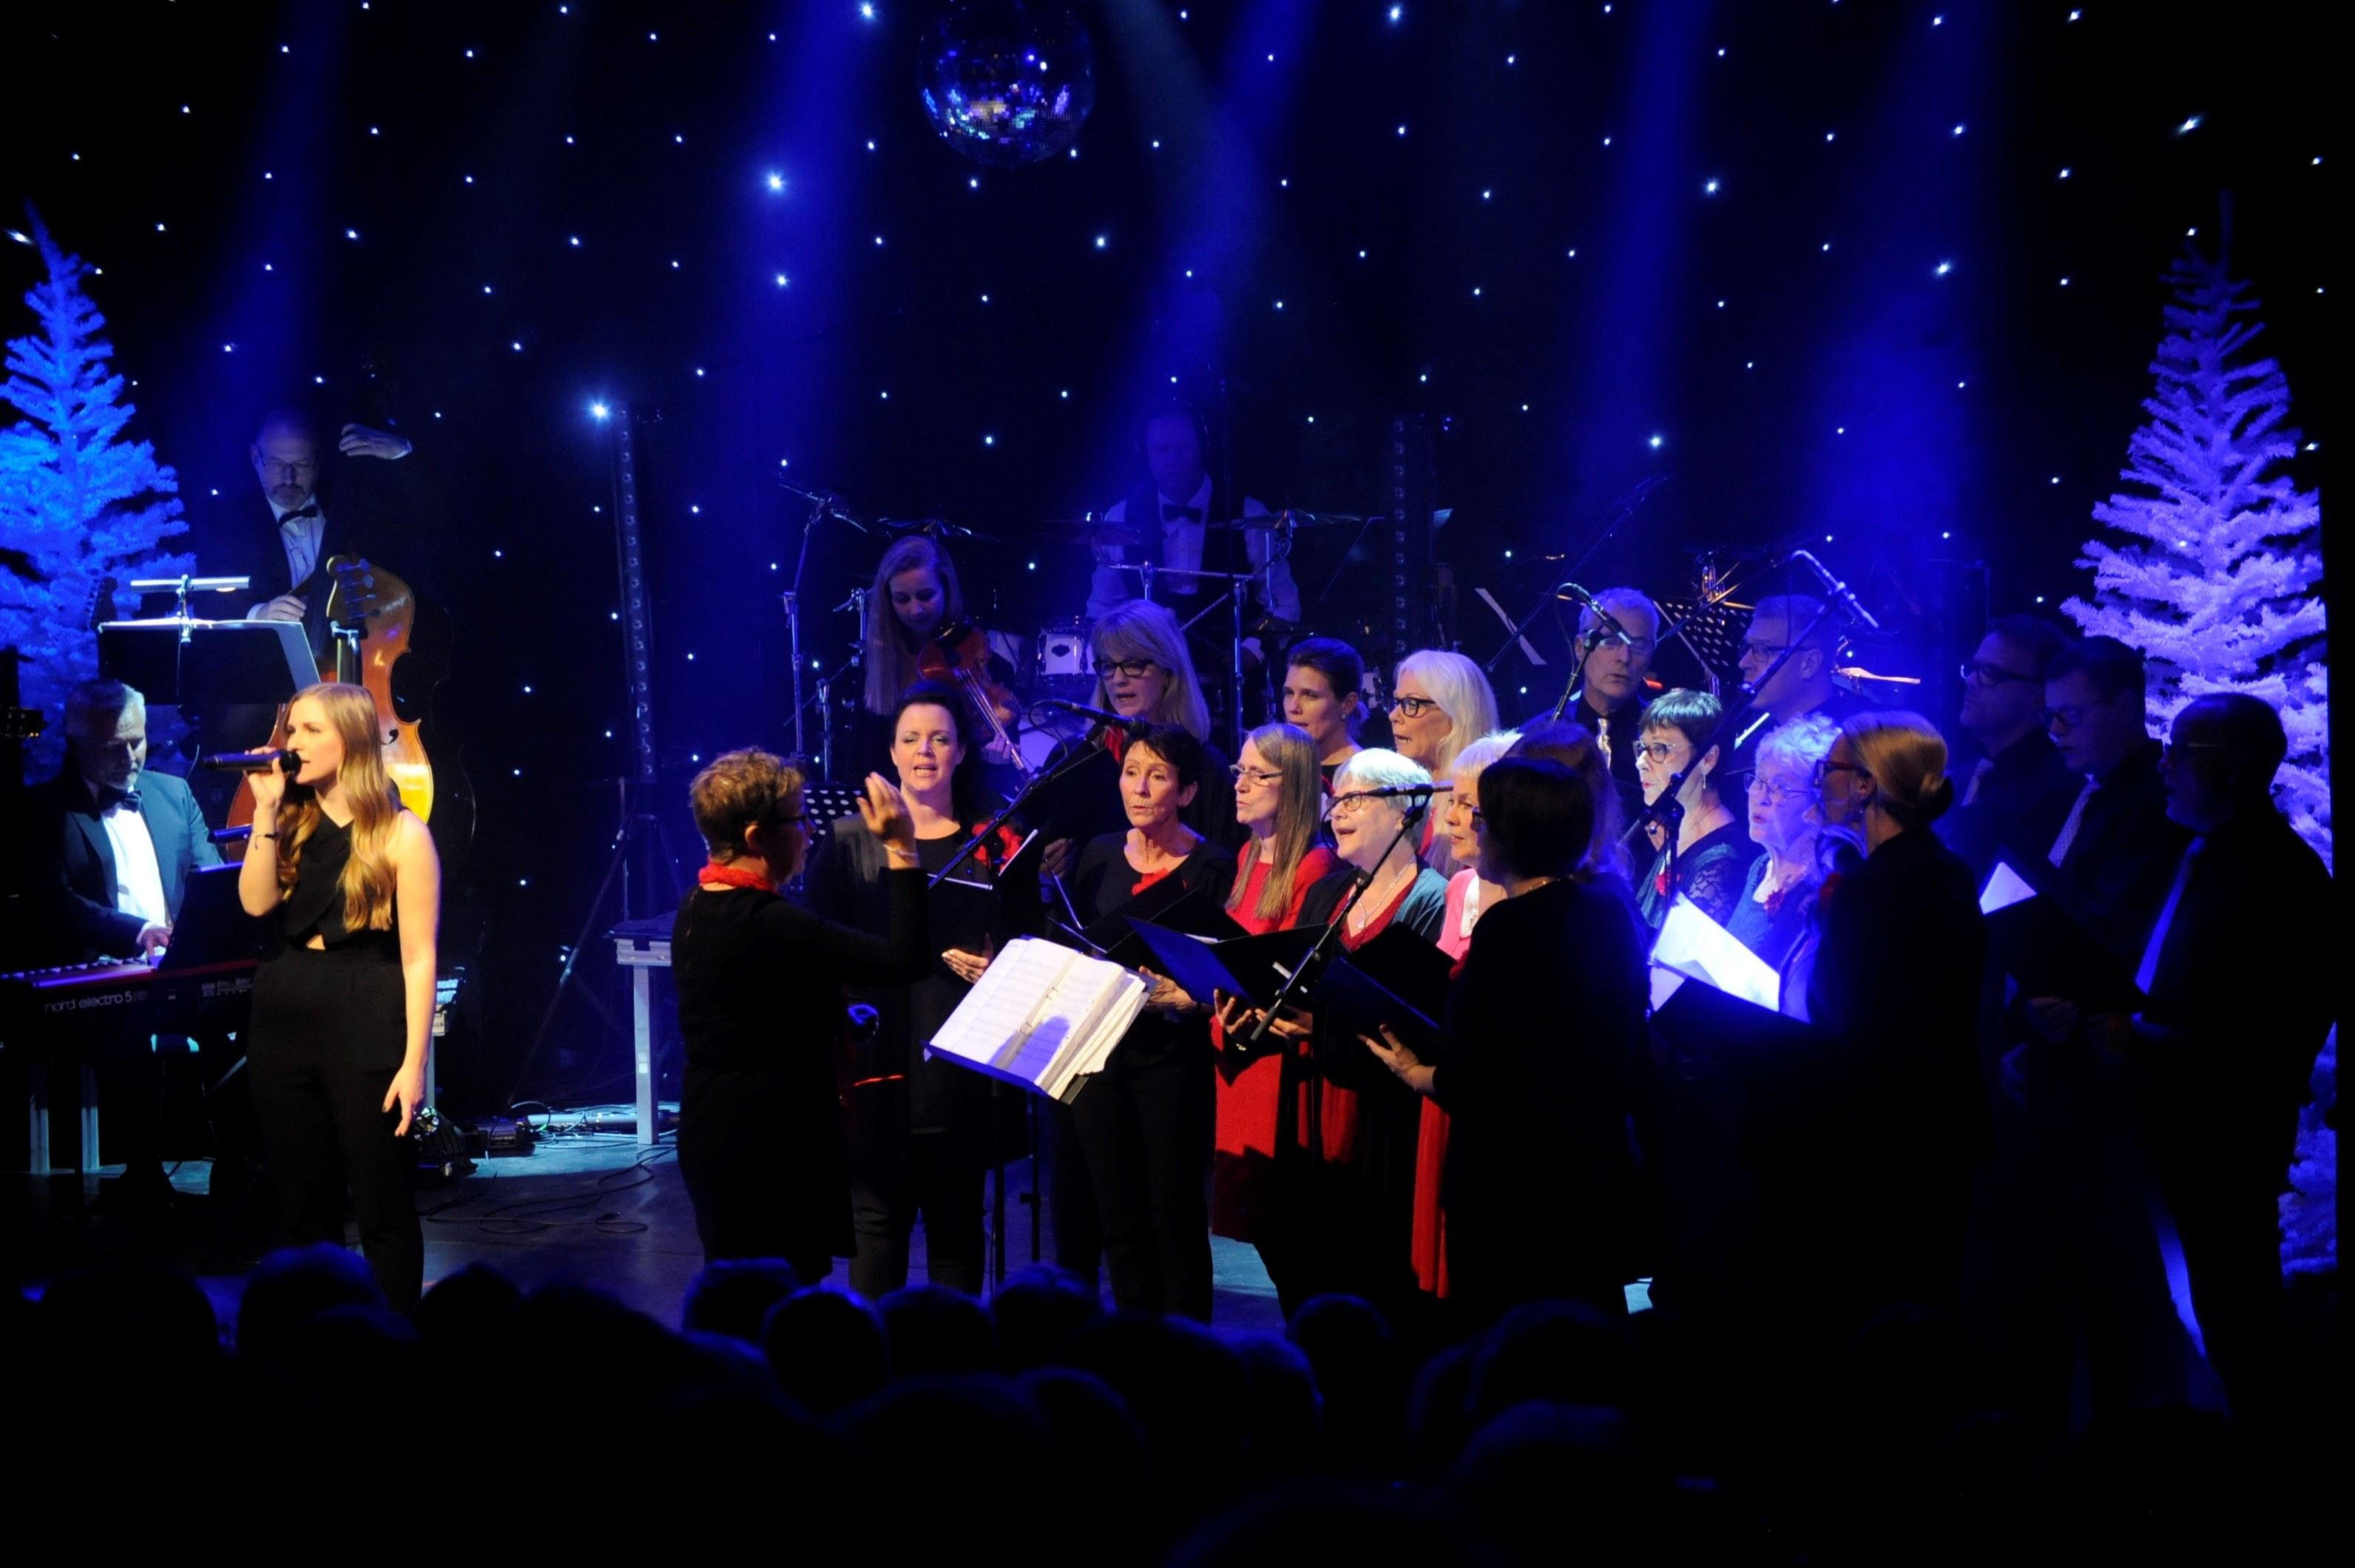 Christmas Concert: Christmas in the city